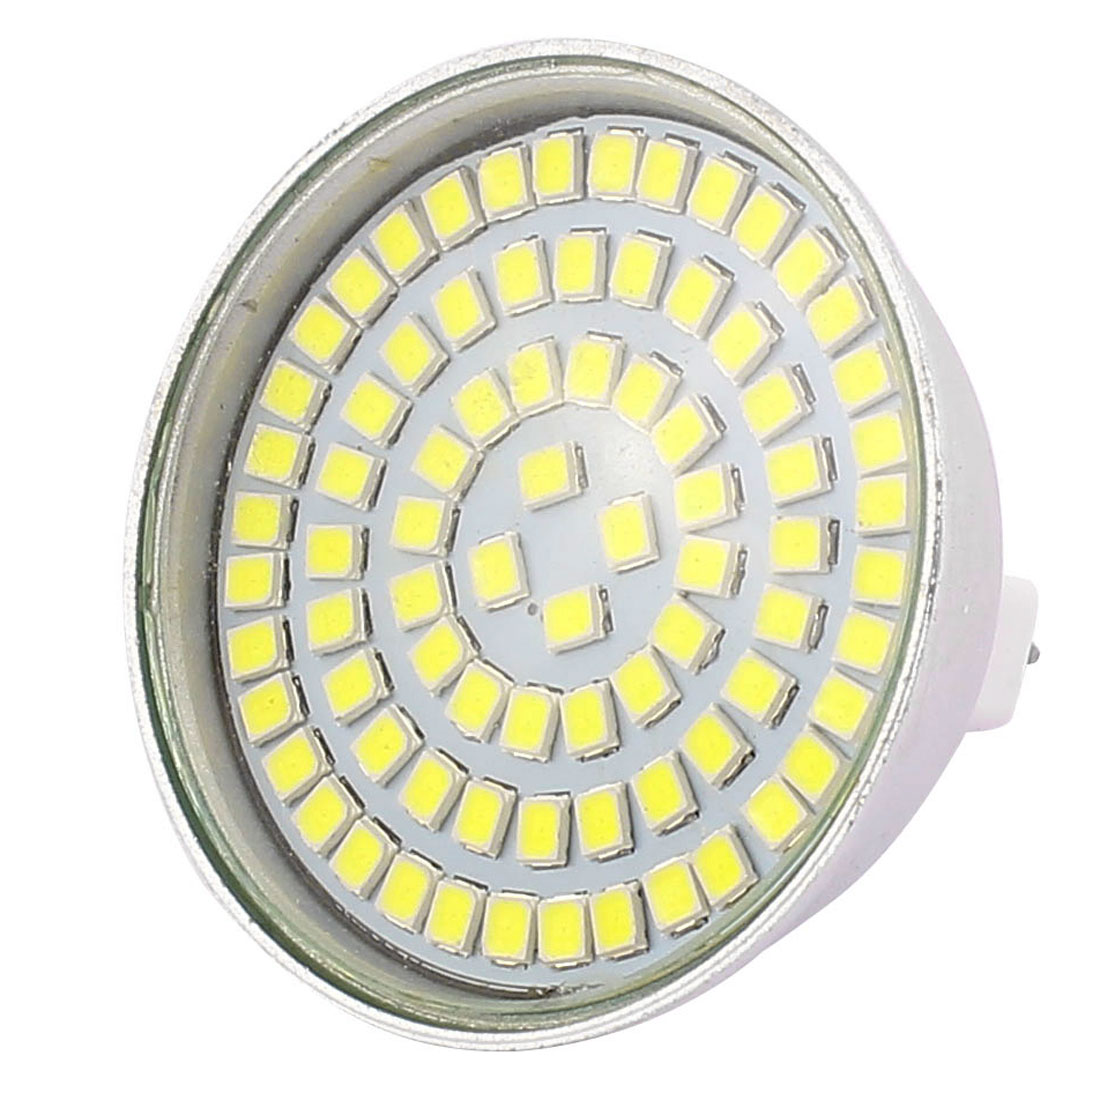 MR16 SMD 2835 80 LEDs Aluminum Energy Saving LED Lamp Bulb White AC 110V 8W